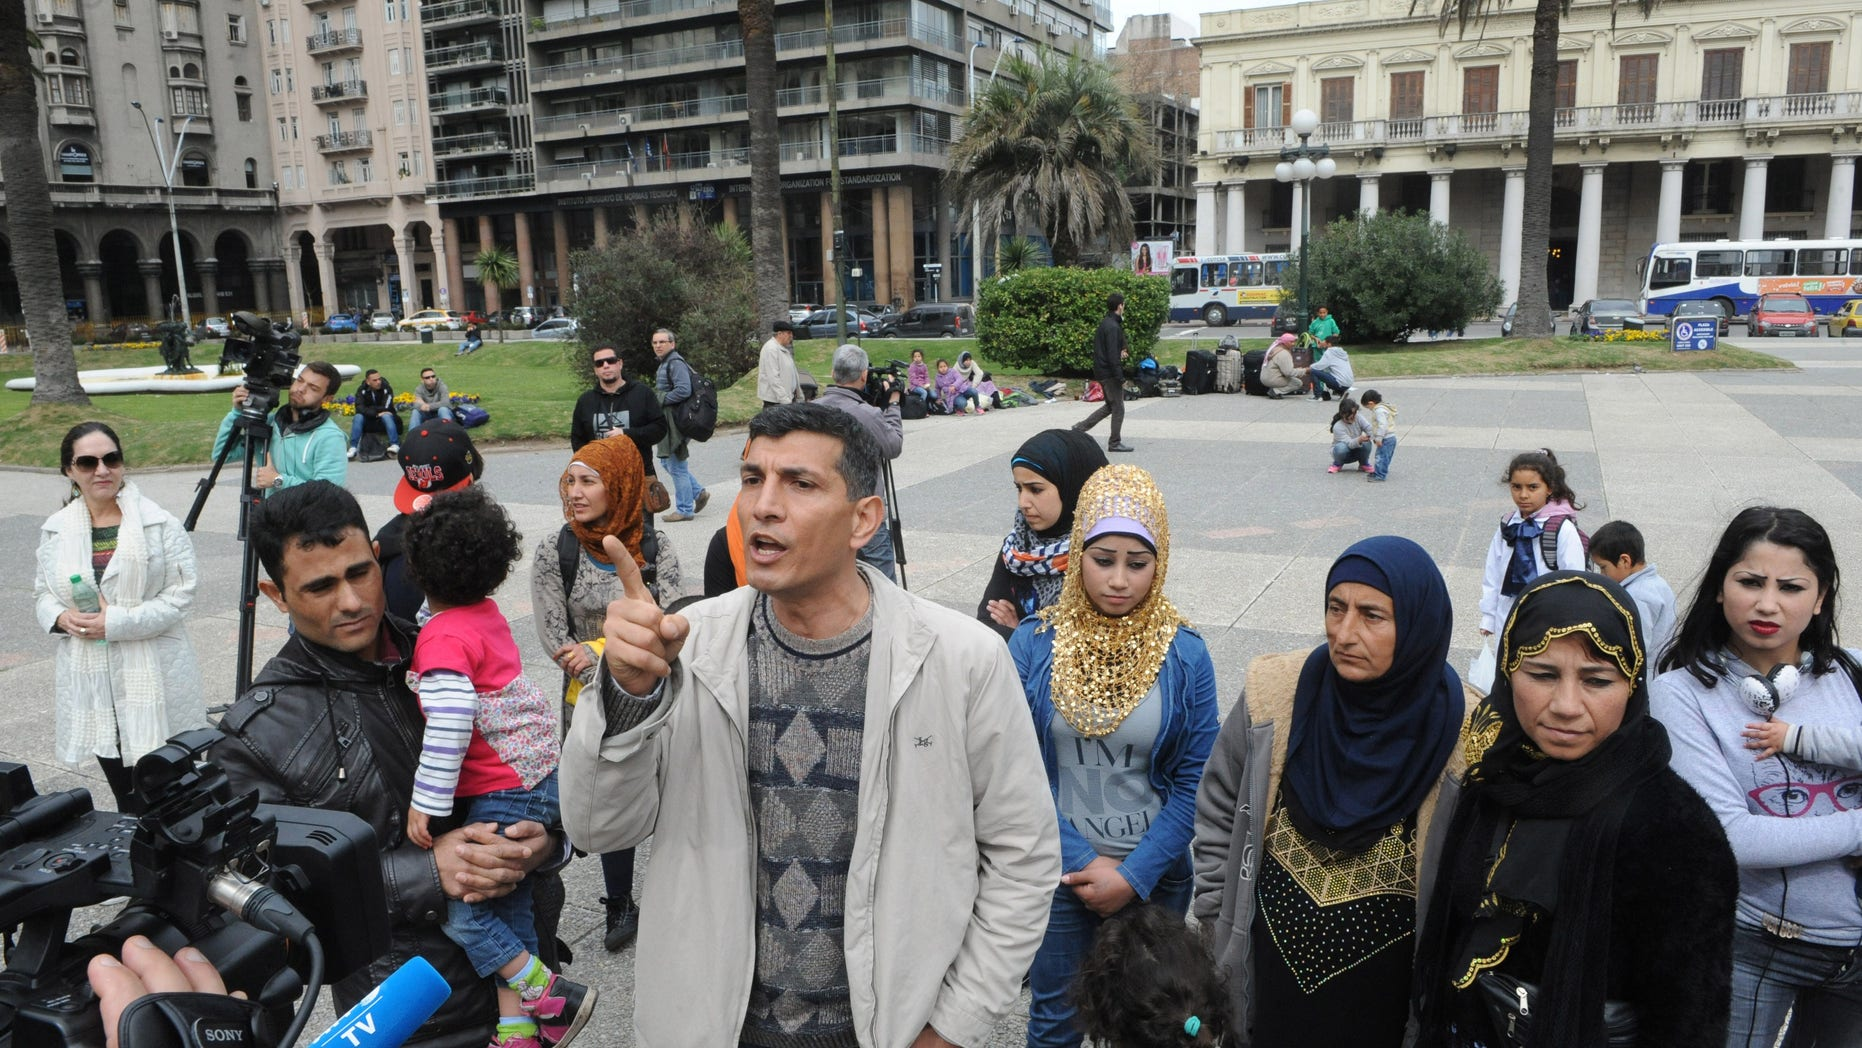 Syrian refugees speak to the press as they demonstrate at Independence square in Montevideo on September 7, 2015. A group of Syrian families which arrived in Uruguay last year as refugees, demand to leave the country. AFP PHOTO / Miguel ROJO        (Photo credit should read MIGUEL ROJO/AFP/Getty Images)